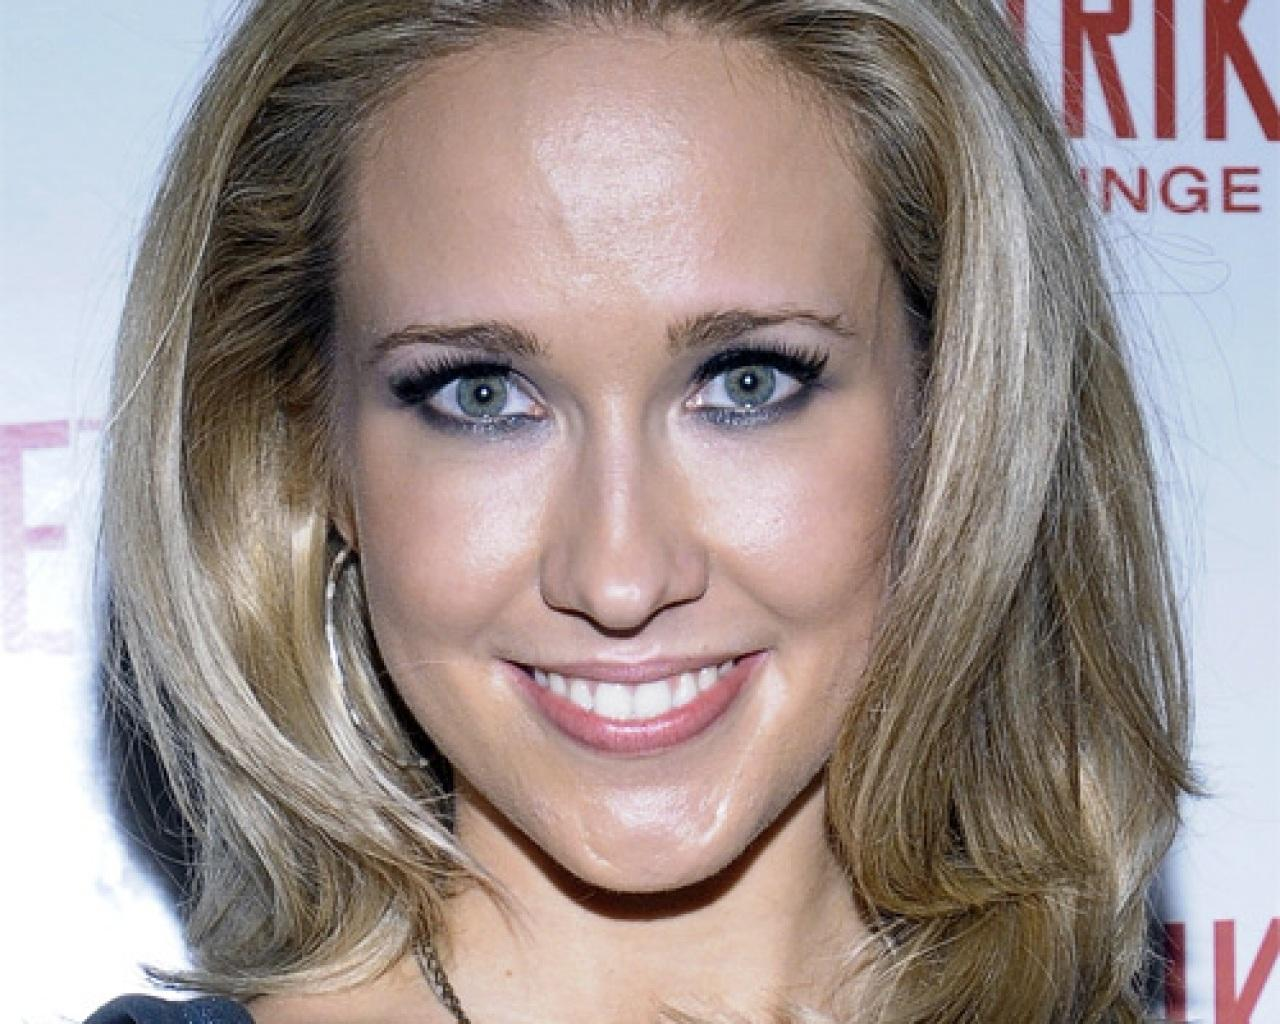 Celebridades Anna Camp Wallpaper Photo Background Wallpapers Images 1280x1024